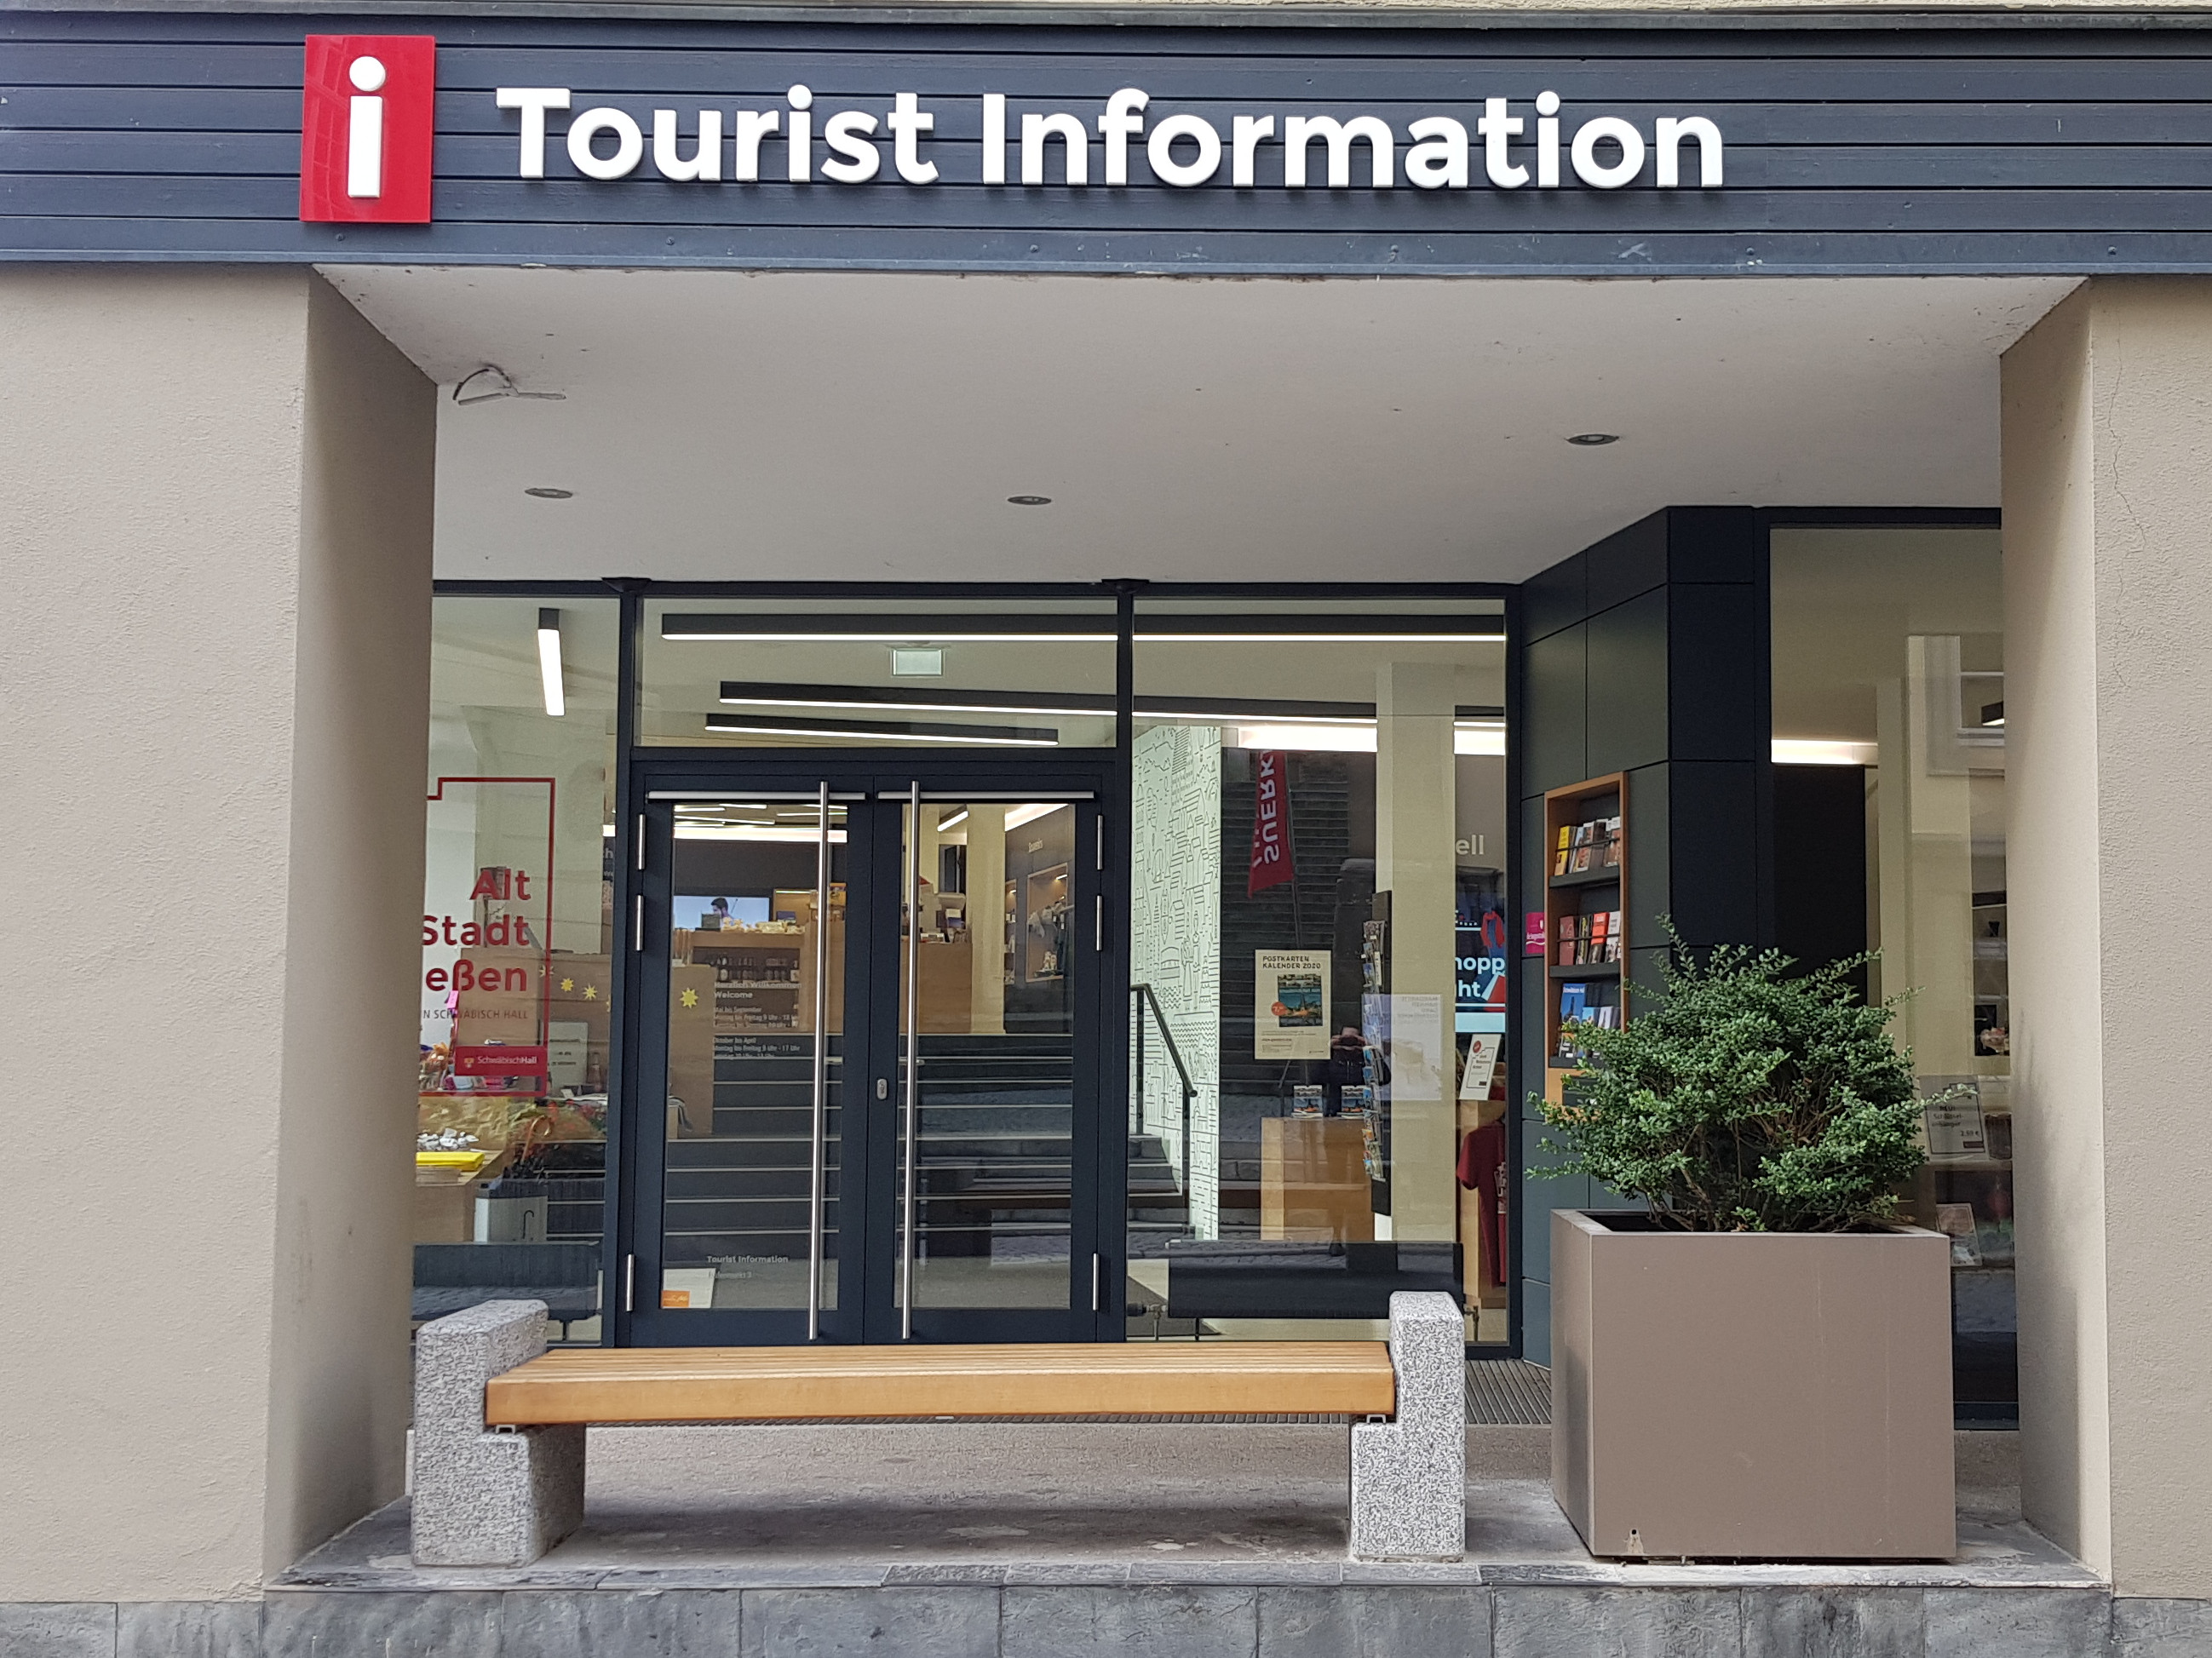 Die Tourist Information. Foto: Touristik und Marketing Schwäbisch Hall.